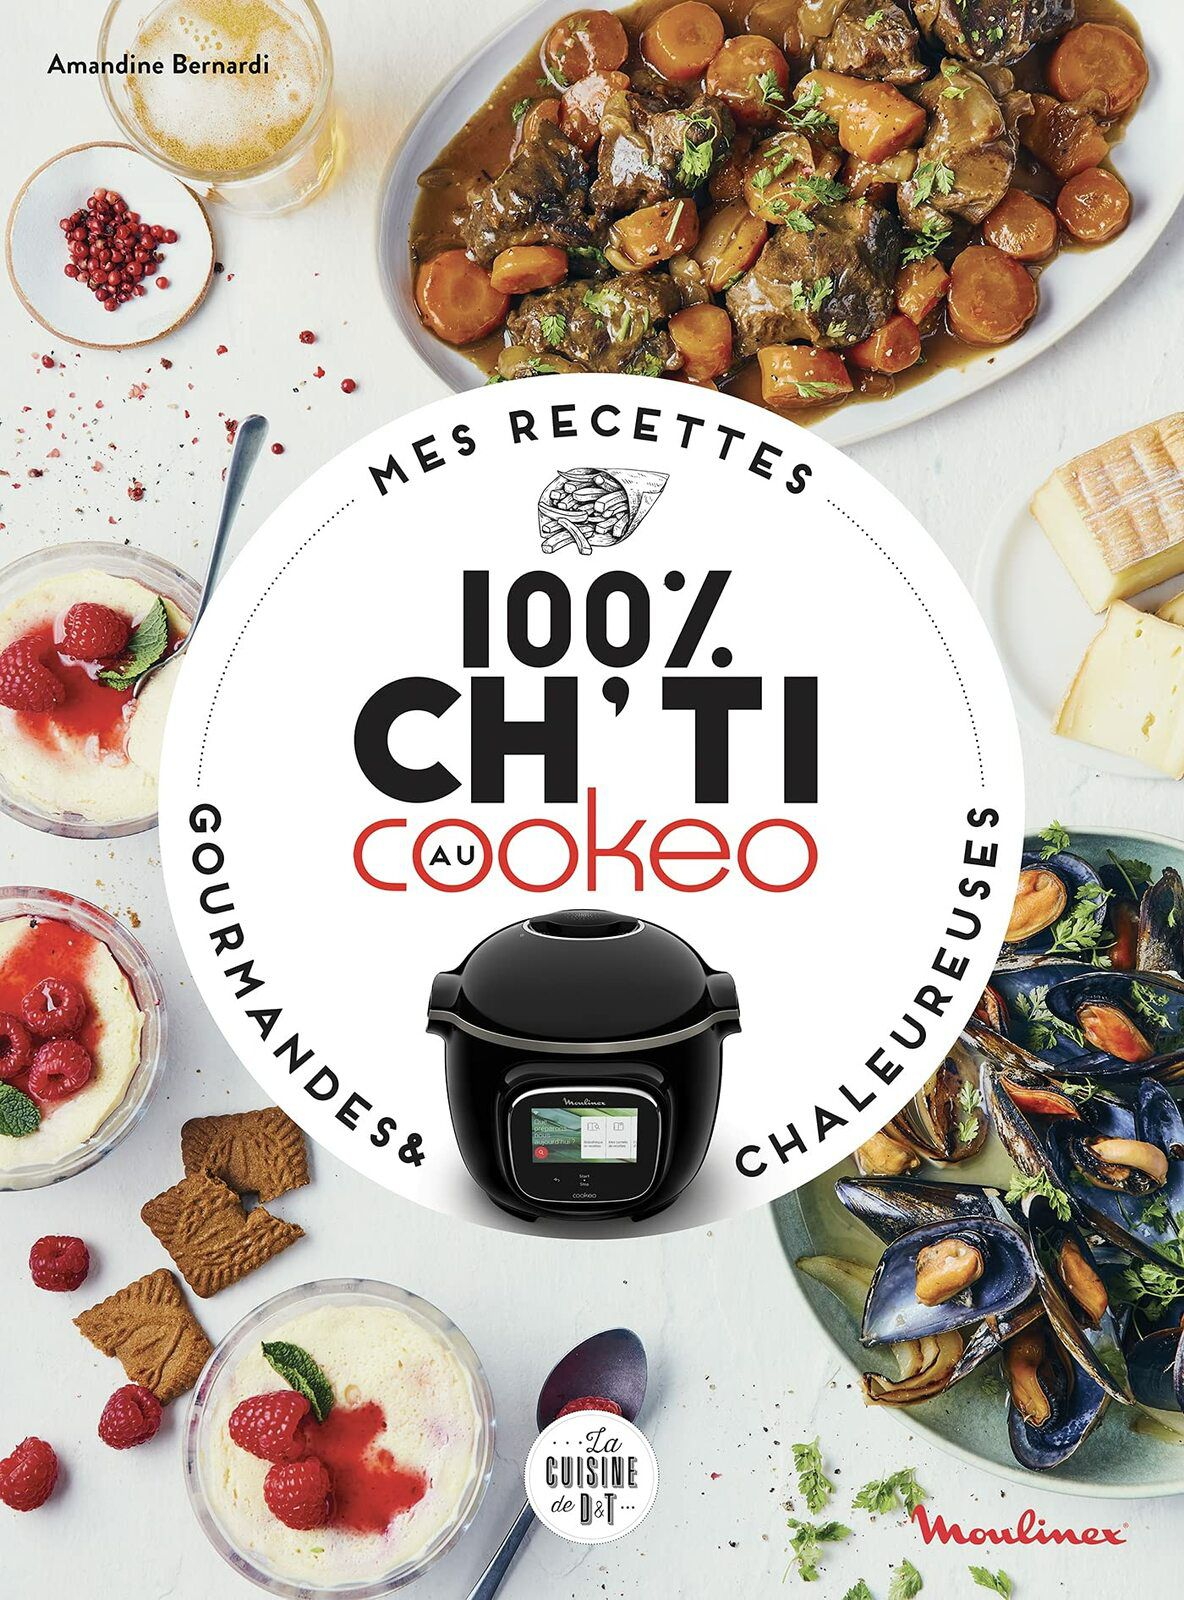 mes recettes chti cookeo